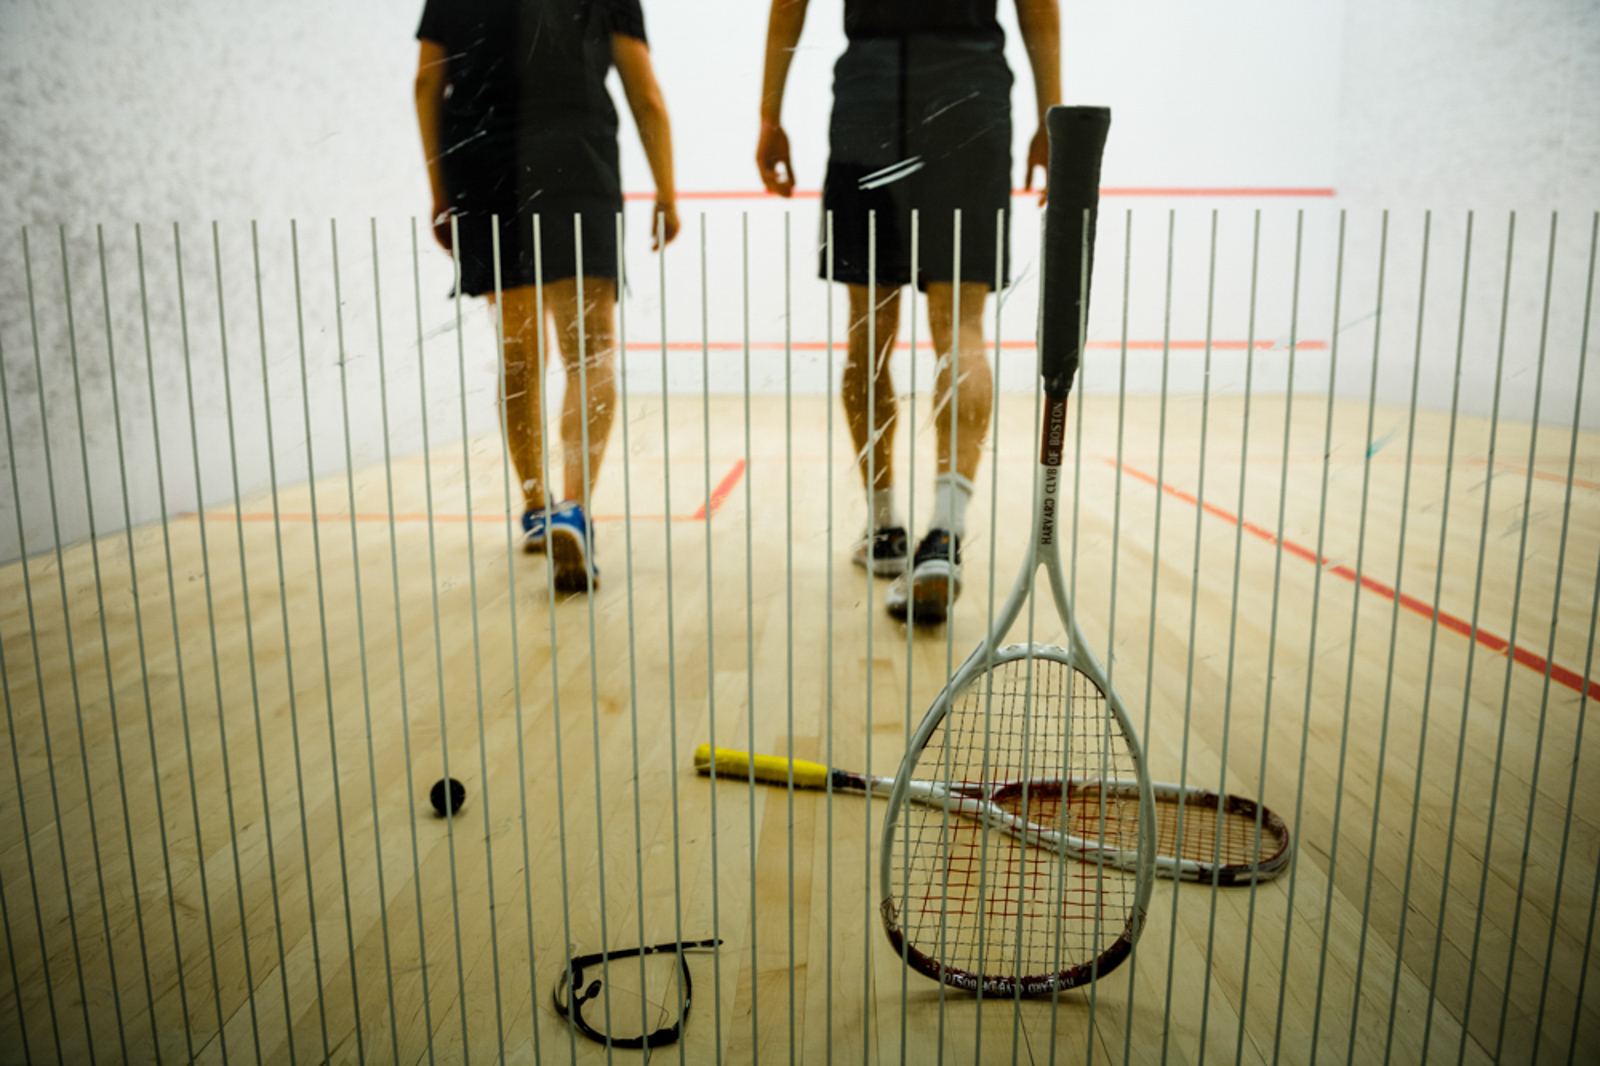 Two men playing tennis indoors, seen through glass